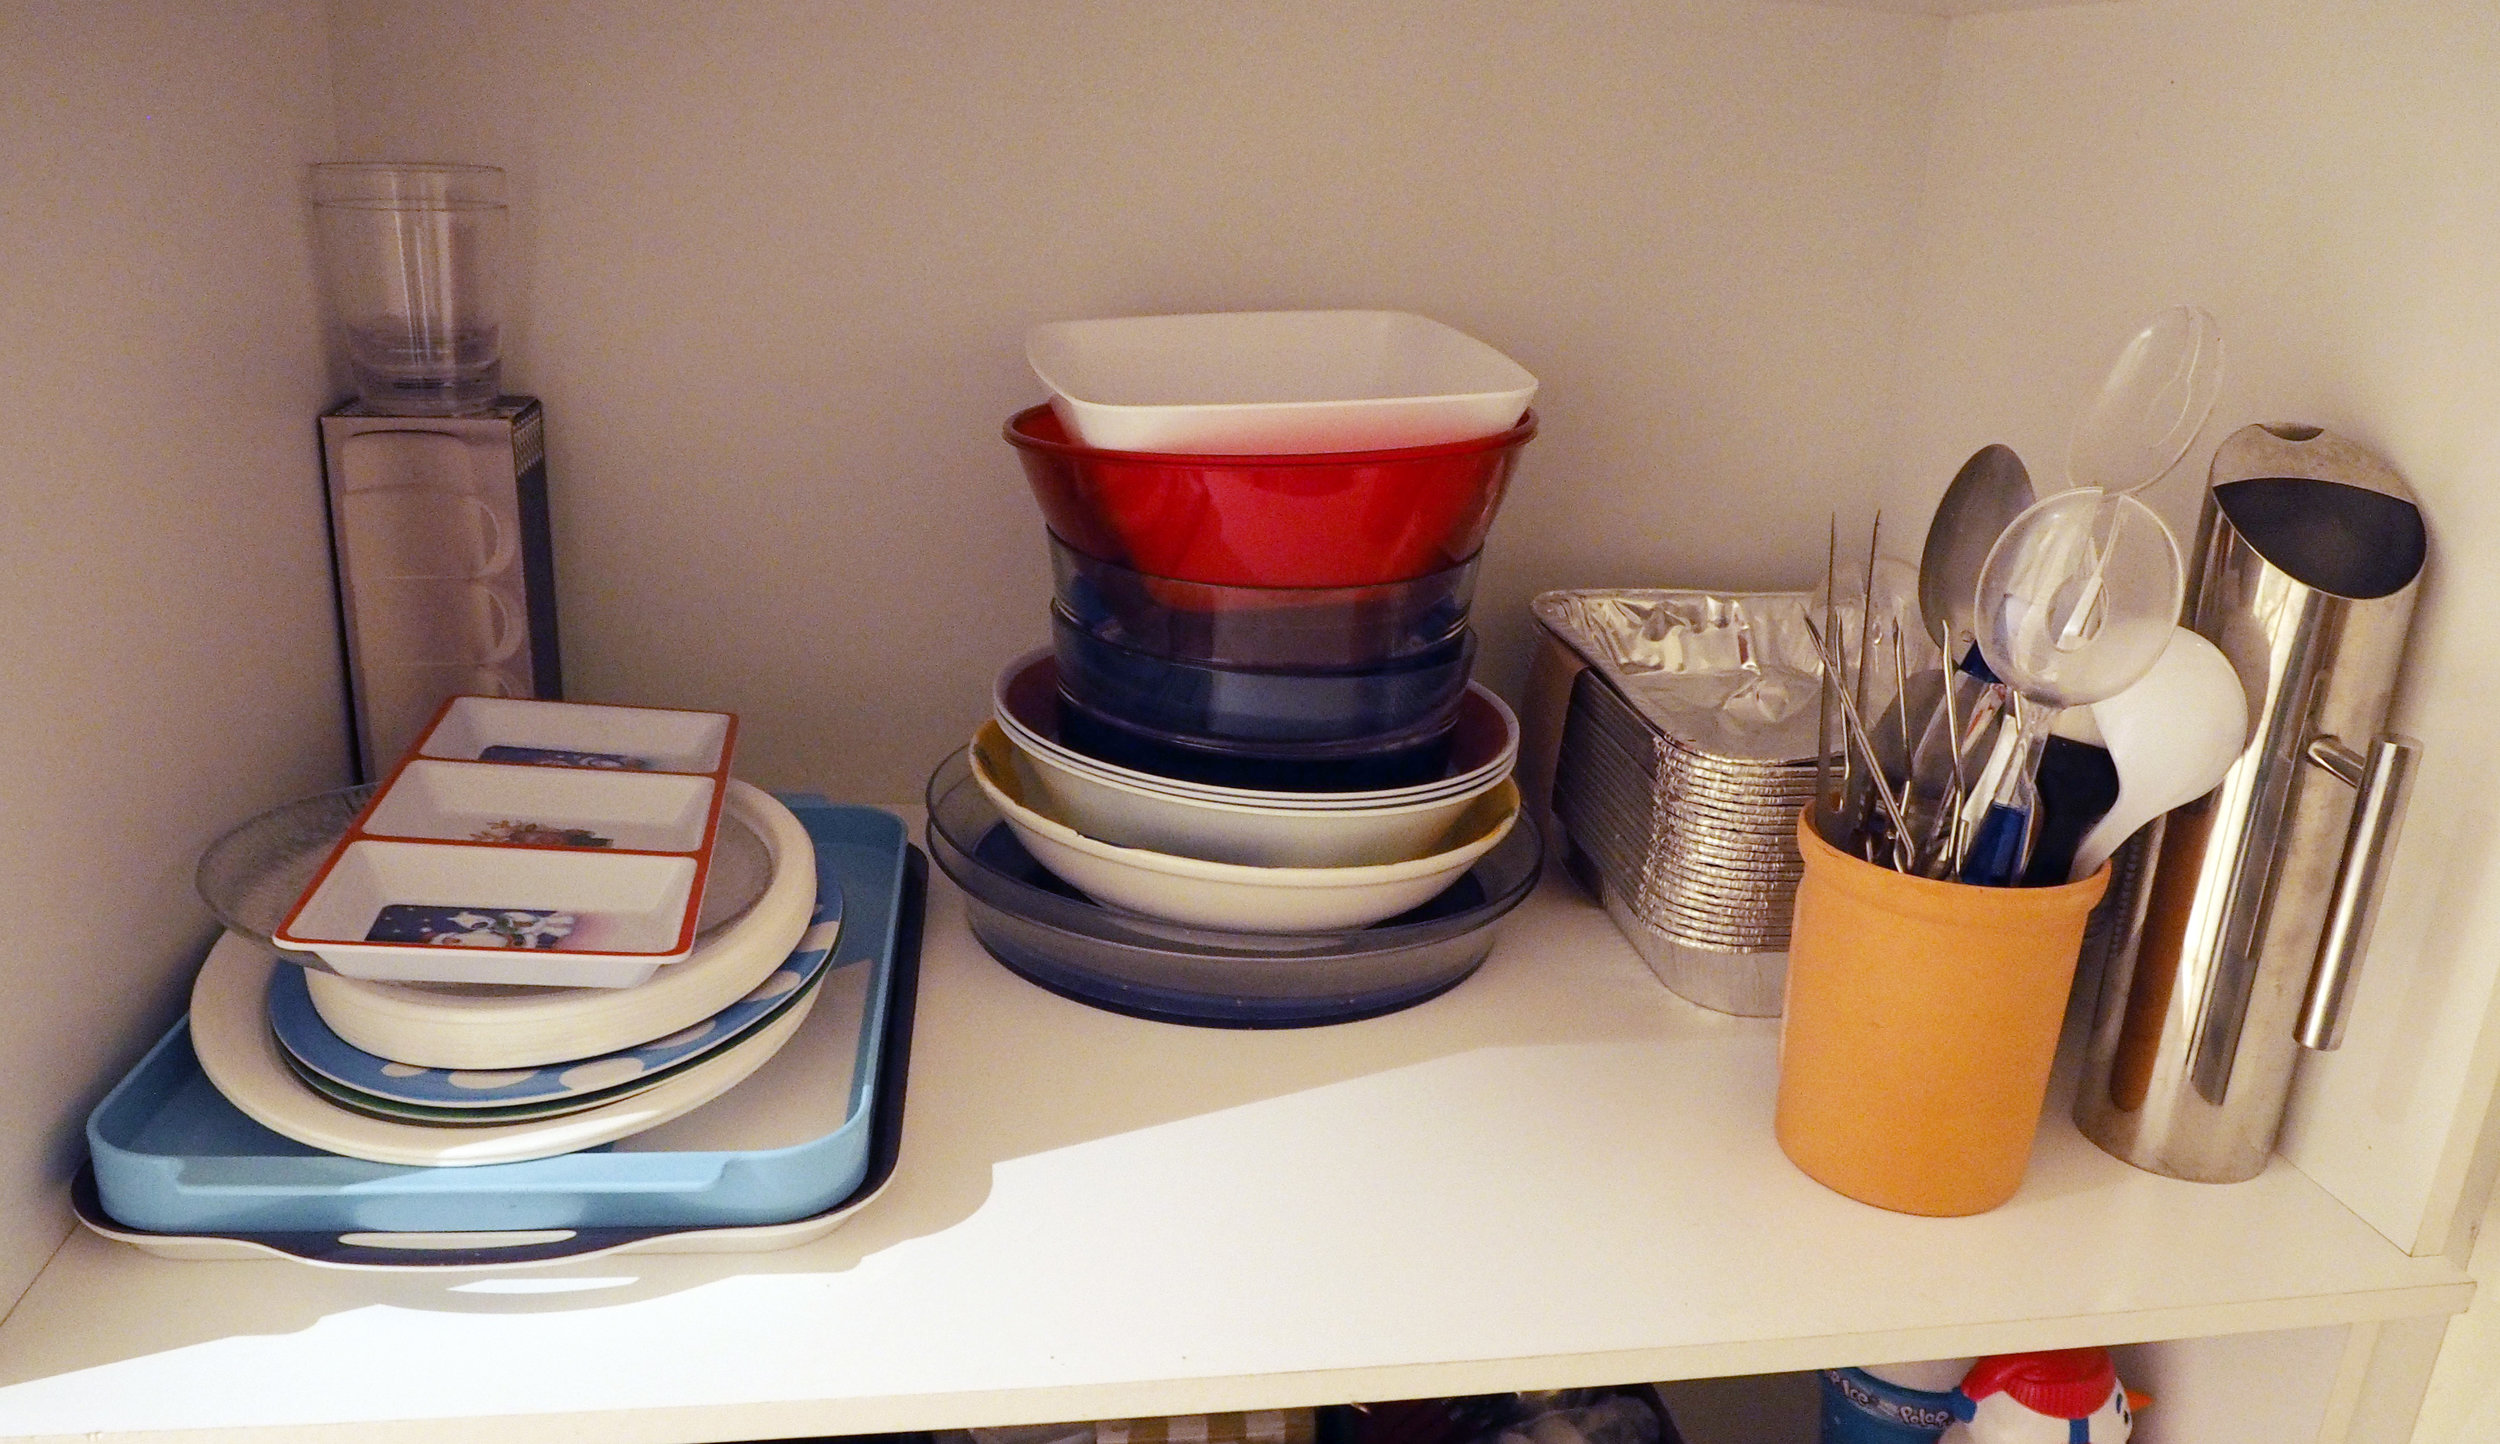 How to organise a pantry - group like categories together on shelves -The Organised You